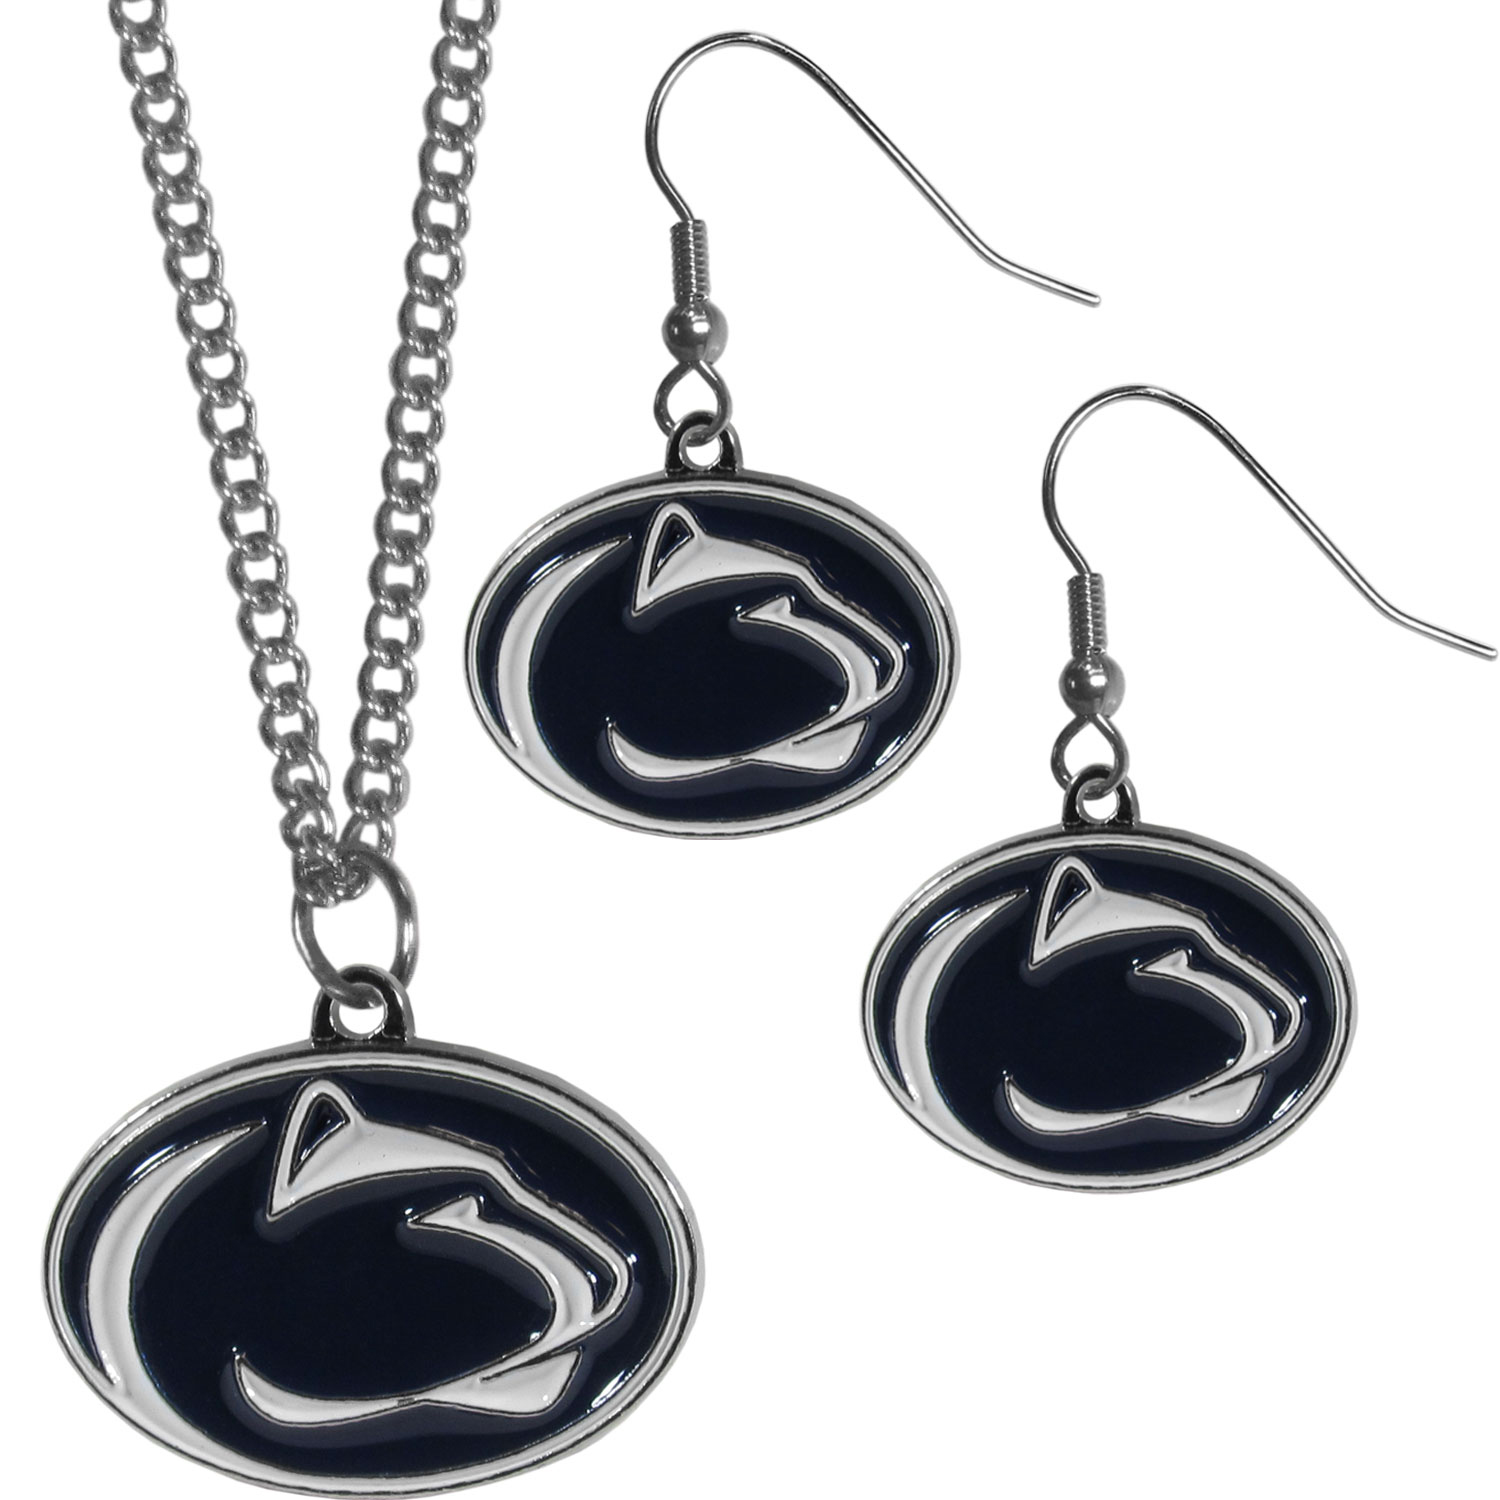 Penn St. Nittany Lions Dangle Earrings and Chain Necklace Set - This classic jewelry set contains are most popular Penn St. Nittany Lions dangle earrings and 22 inch chain necklace. The trendy, dangle earrings are lightweight and feature a fully cast metal team charm with enameled team colors. The matching necklace completes this fashion forward combo and is a spirited set that is perfect for game day but nice enough for everyday.